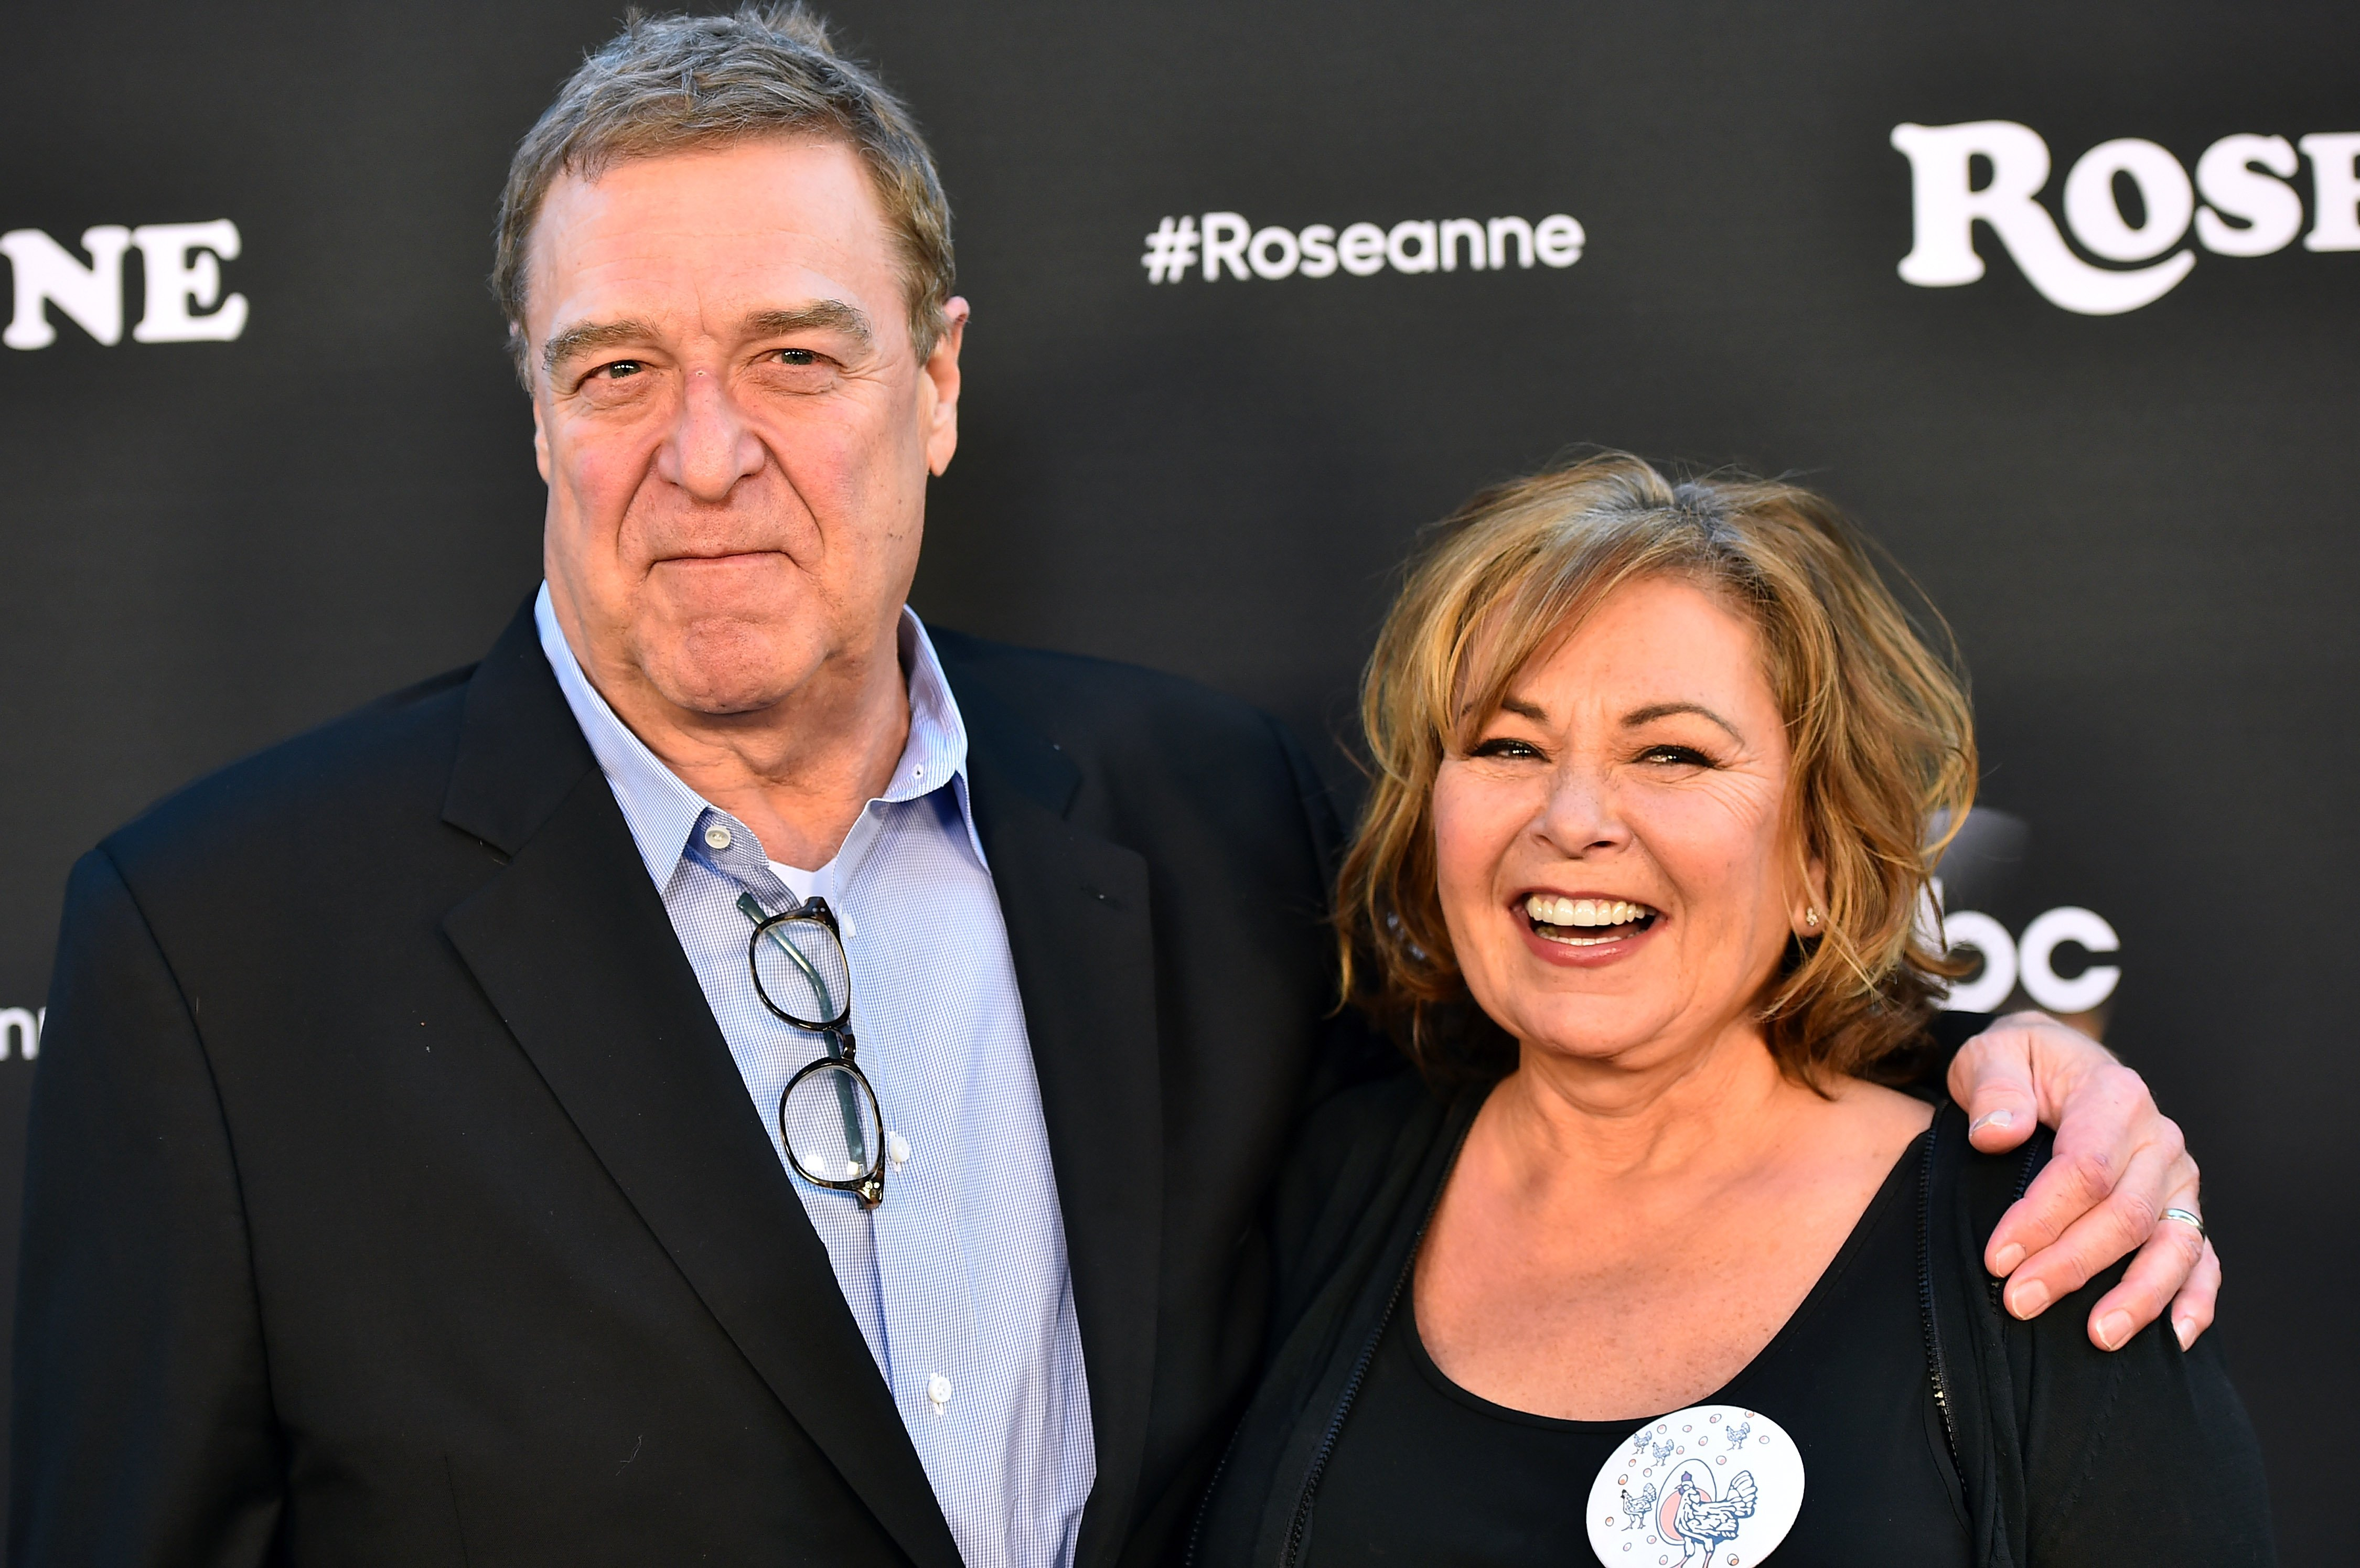 """John Goodman and Roseanne Barr attend the premiere of """"Roseanne"""" in Burbank, California on March 23, 2018 